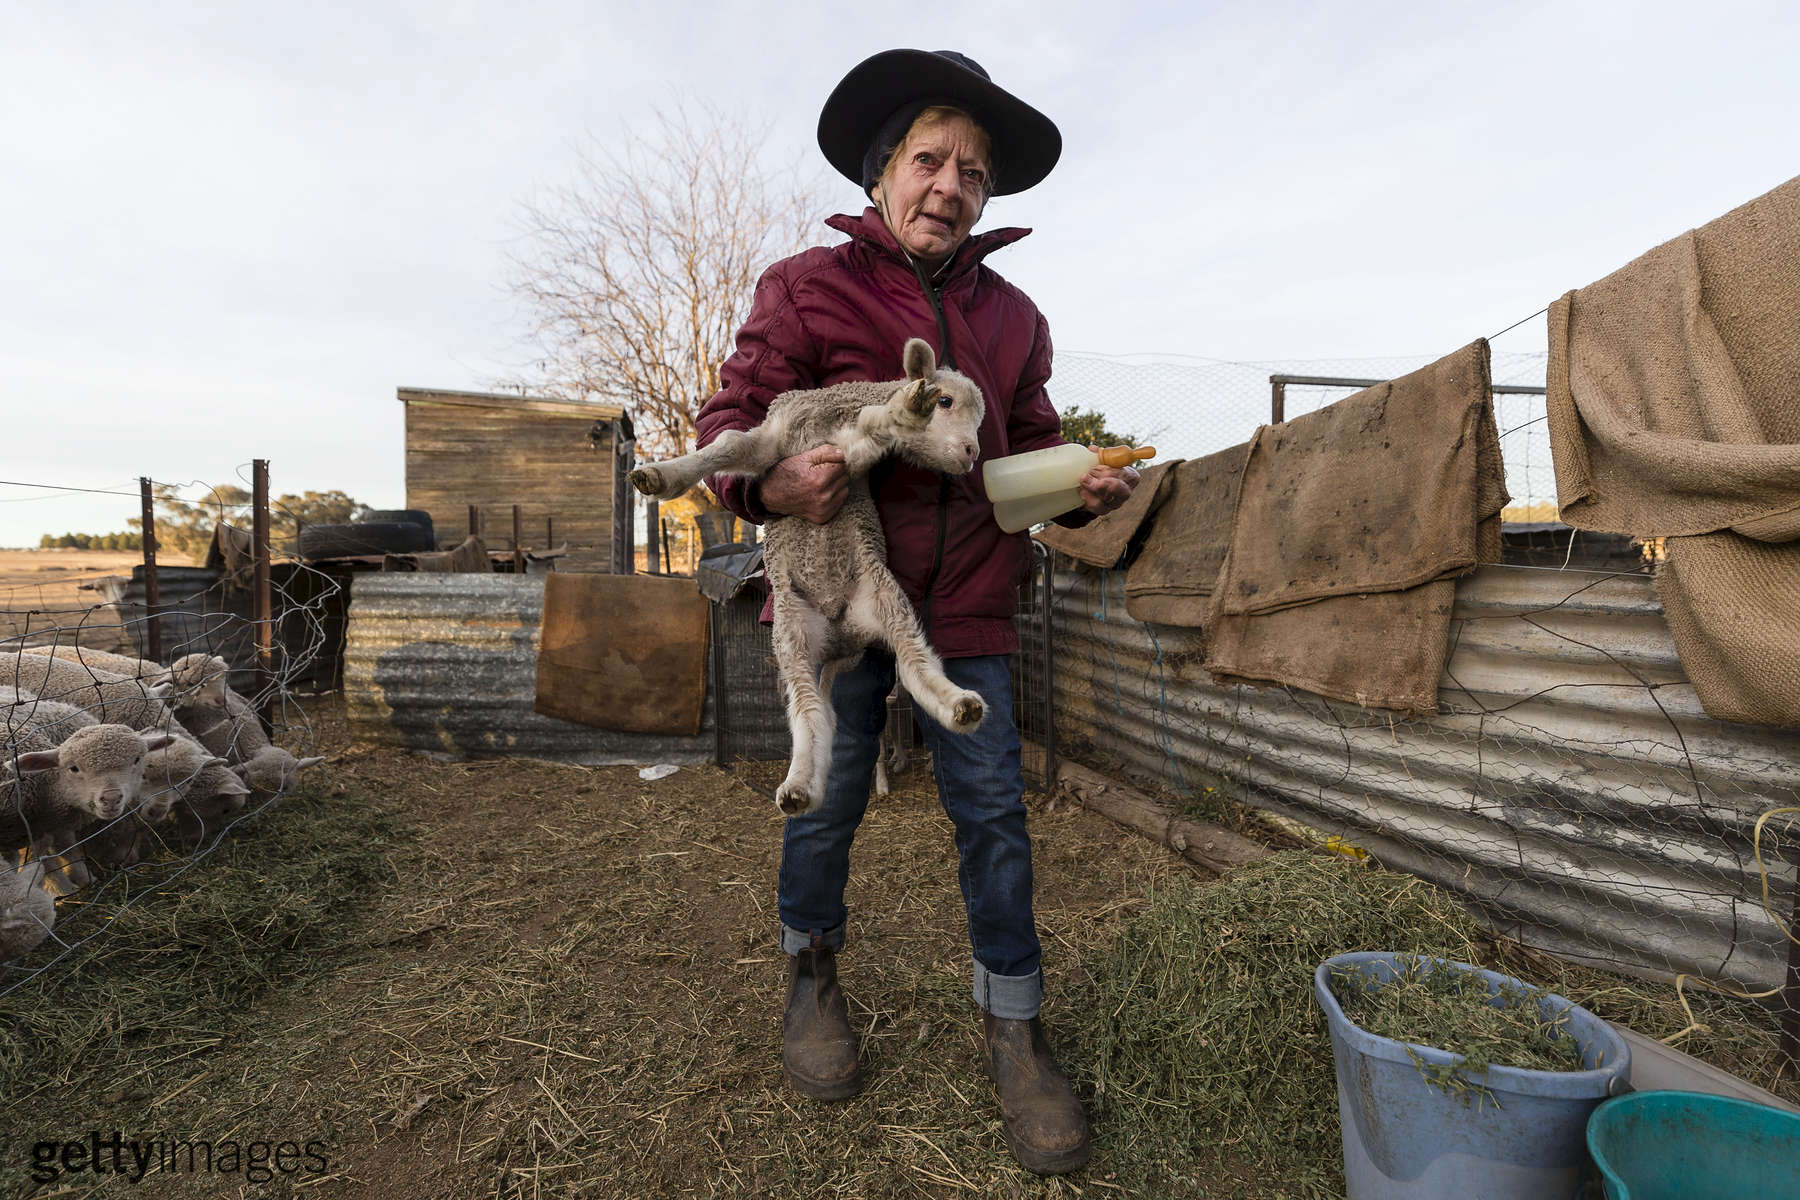 COONABARABRAN , NEW SOUTH WALES - JUNE 20:  ' Coral Jerry, 80, is pictured on the family farm 'Marlborough', 40 km outside Coonabarabran. Coral lives on the farm alone after her husband of 55 years passed away in 2015. She is currently raising 40 orphaned lambs on her own (feeding them 4-5 times a day) while her son Garry, wife Tanya and son Brett run the farm. The New South Wales State government recently approved an emergency drought relief package of A$600m, of which at least A$250m is allocated for low interest loans to assist eligible farm businesses to recover. The package has been welcomed, though in the words of a local farmer {quote}it barely touches the sides{quote}. Now with the real prospect of a dry El-Nino weather pattern hitting the state in Spring, the longer term outlook for rain here is dire. June 20, 2018 in Coonabarabran, Australia.  (Photo by Brook Mitchell/Getty Images)